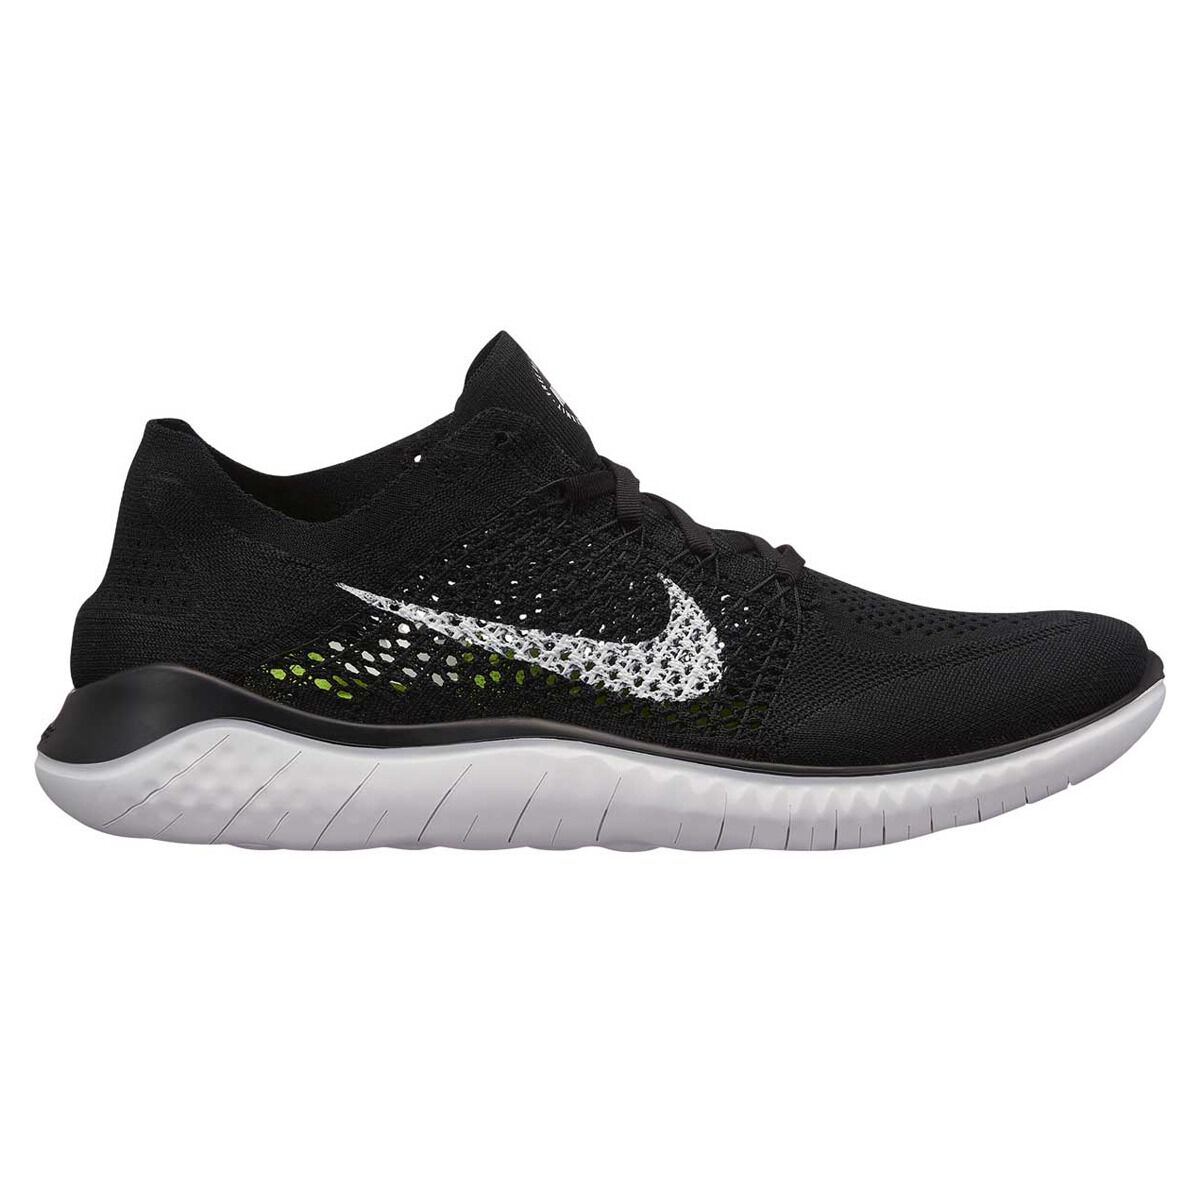 e92aff94d1e2 Nike Air Zoom Pegasus 35 Men s.  120.00  104.99 Price reduced from  120.00  to  104.99. nike lunar racer sfb for sale in texas state